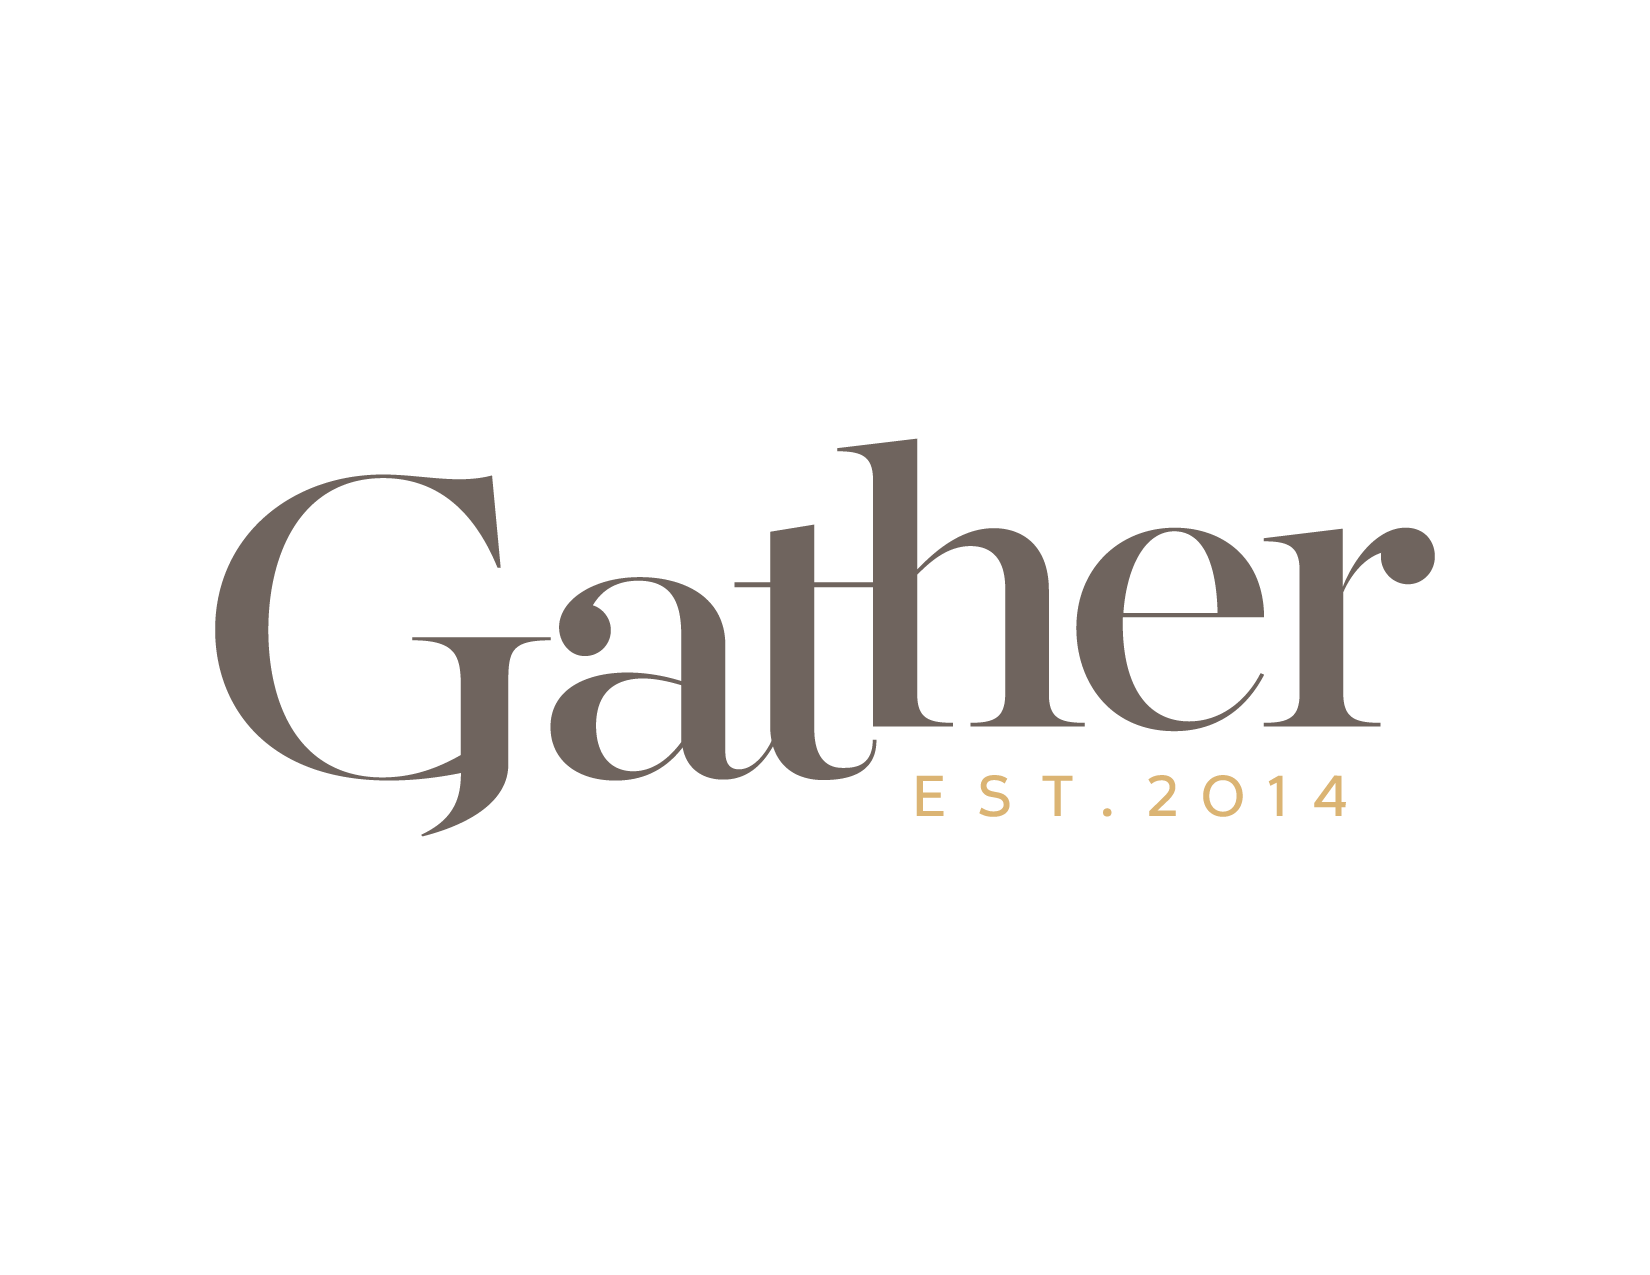 Gather_final_OCT15_BW Logo.png